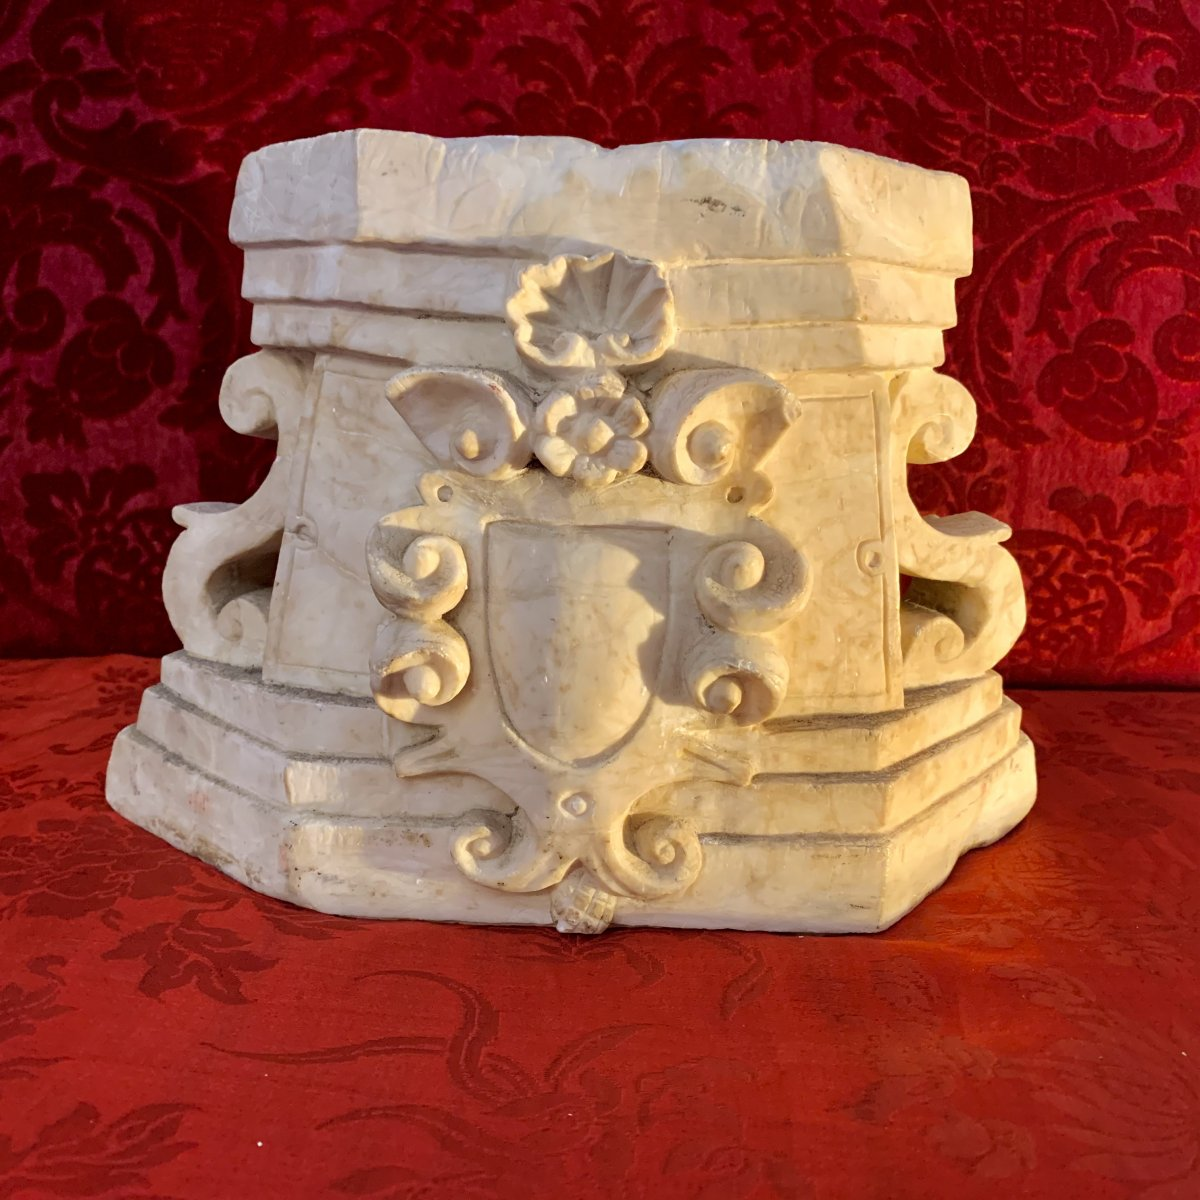 Beautiful Carrara Marble Baroque Decor - Eighteenth Time